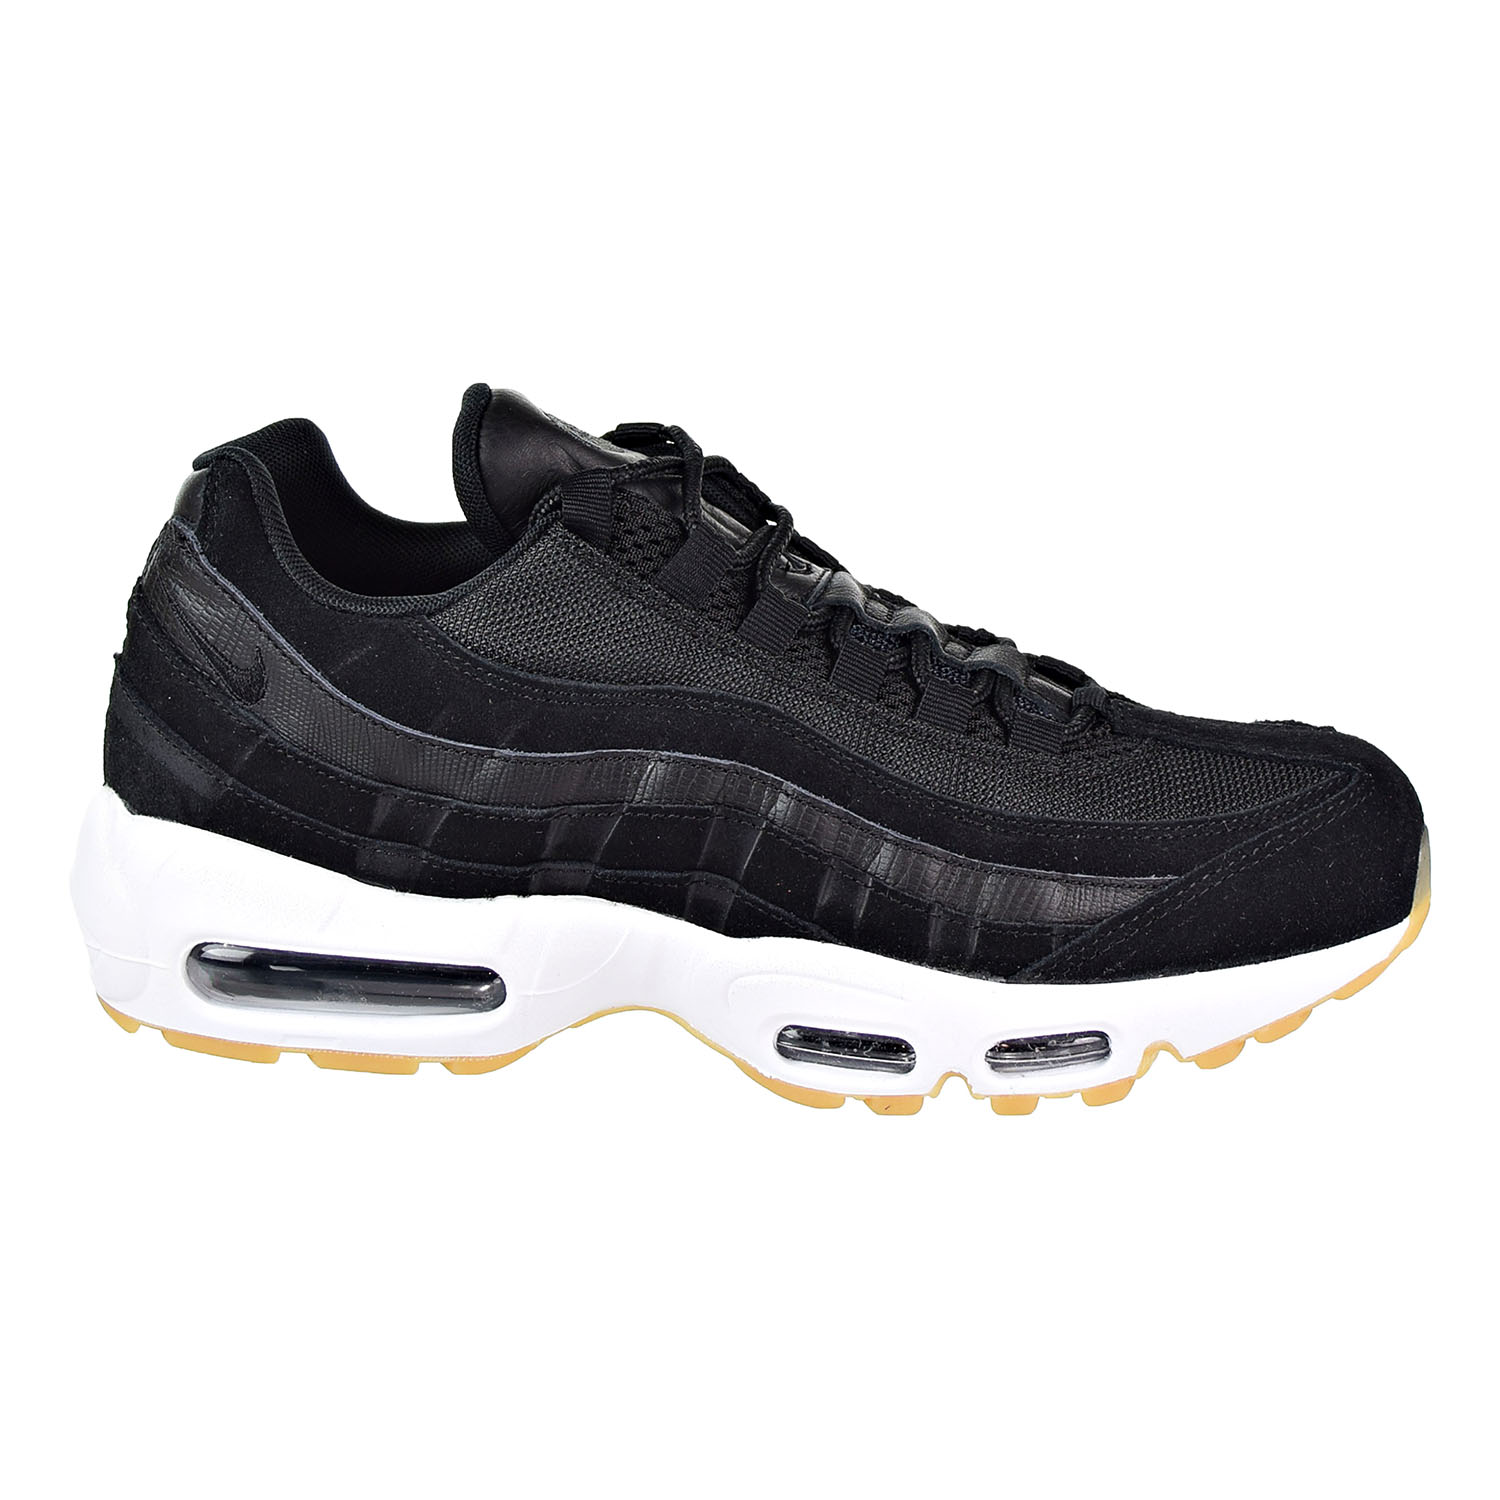 Nike Air Max 95 Premium Men's Shoes Black/Black 538416-016